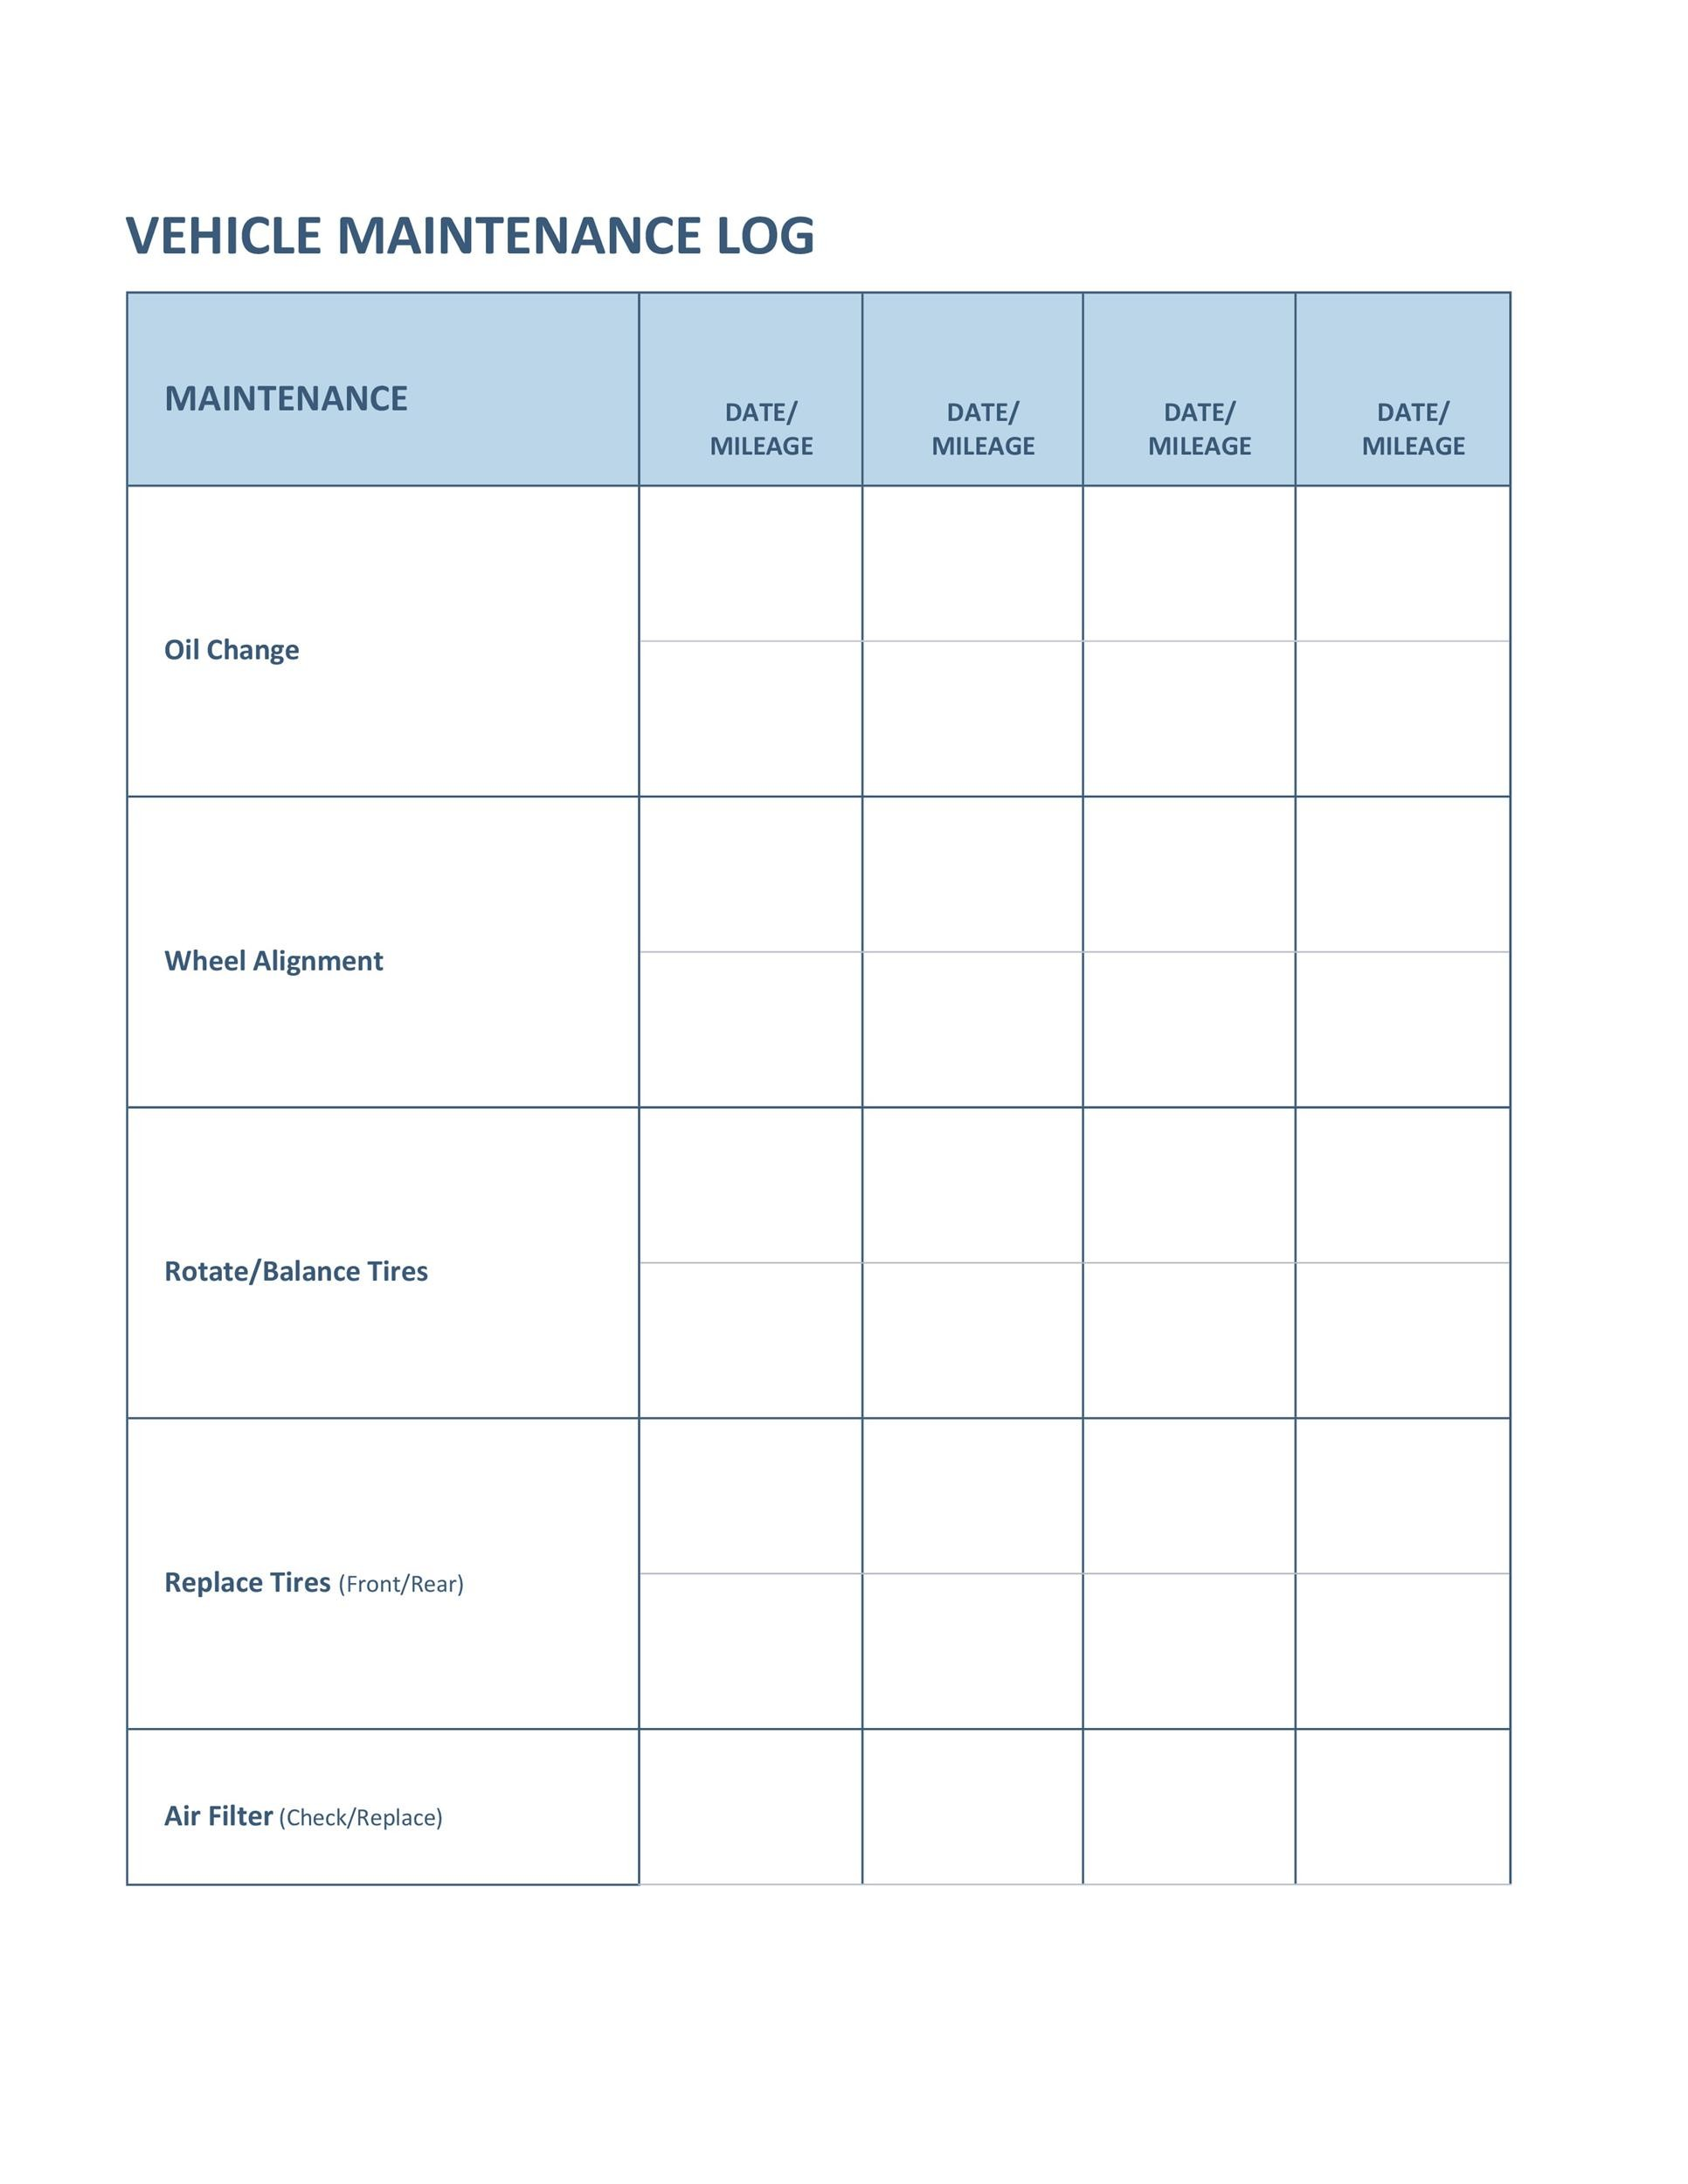 40 Printable Vehicle Maintenance Log Templates Templatelab